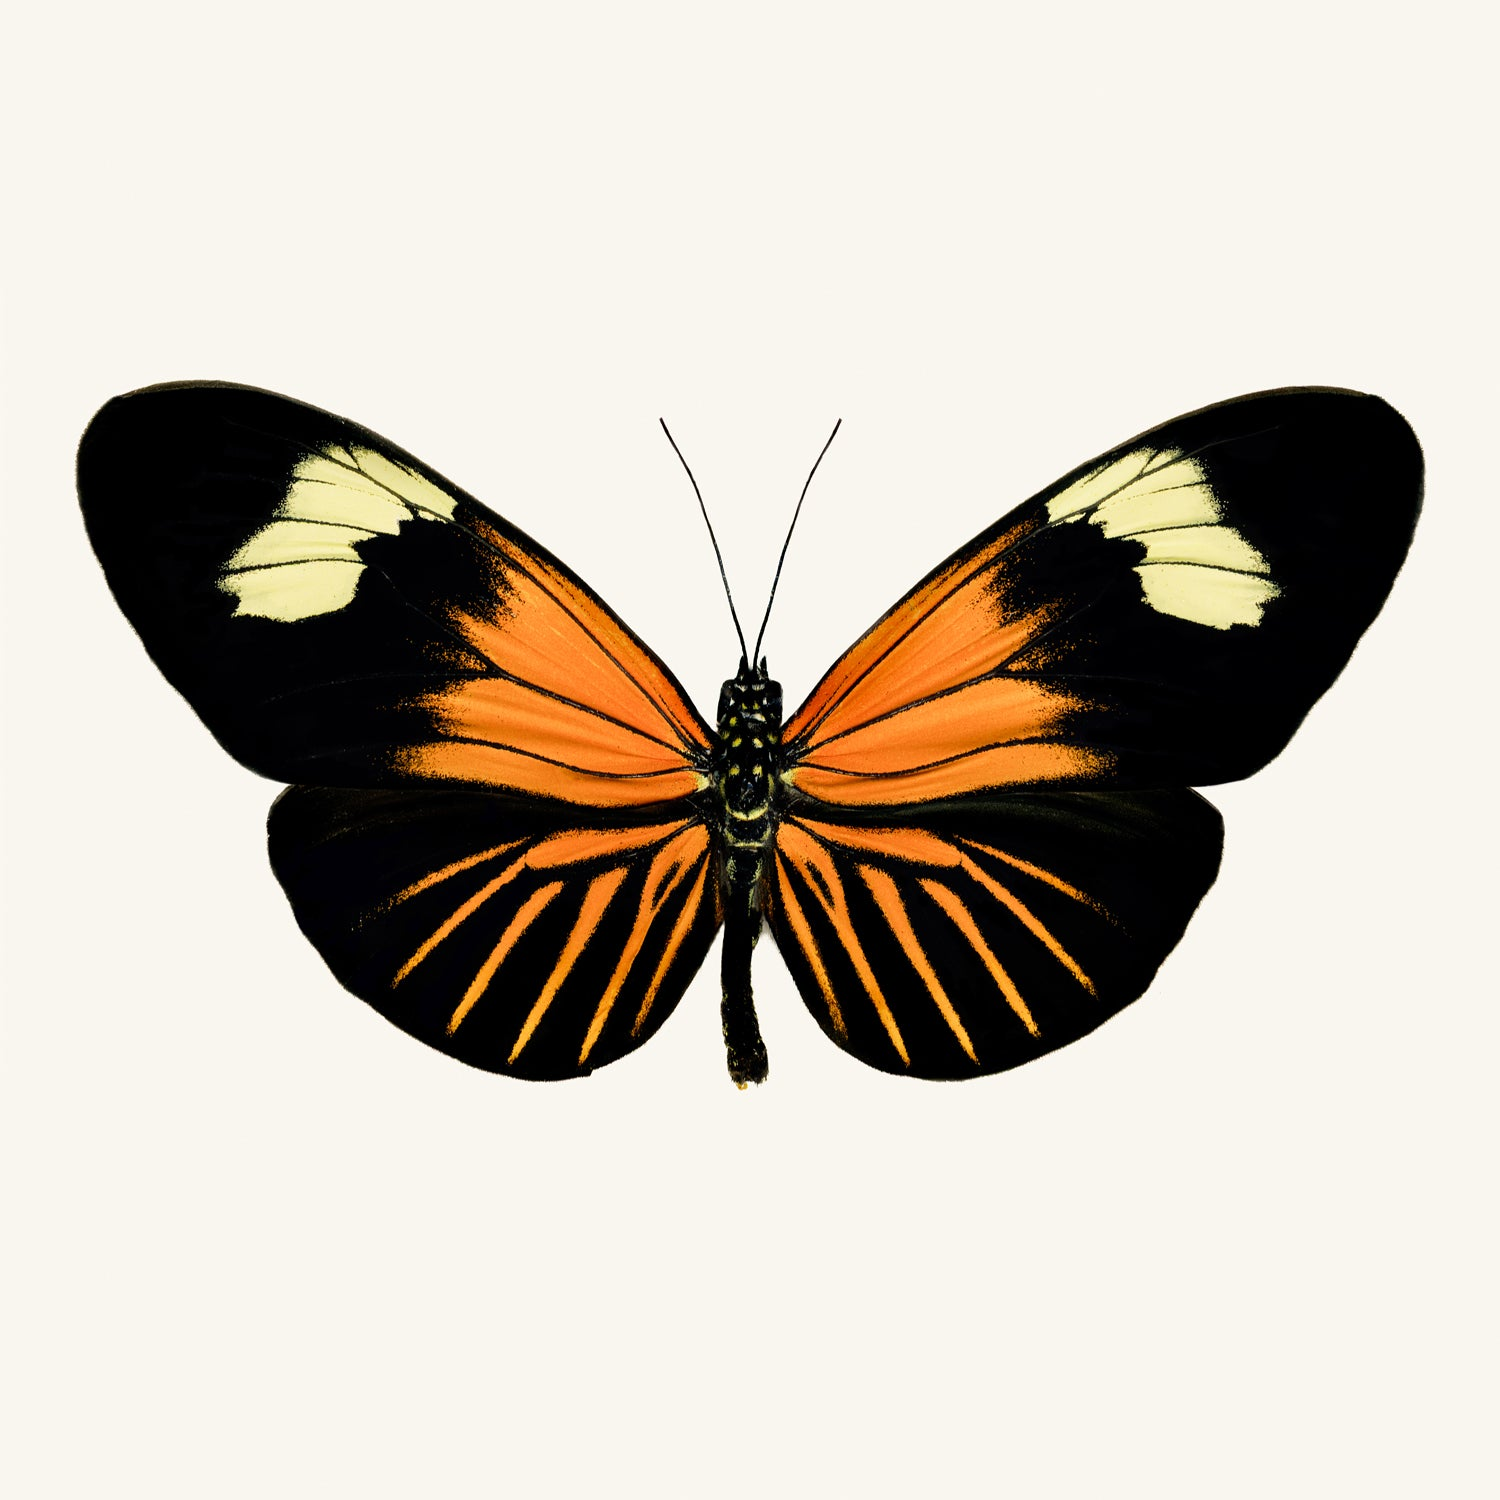 SQ Butterfly No. 13 - Orange Longwing Butterfly